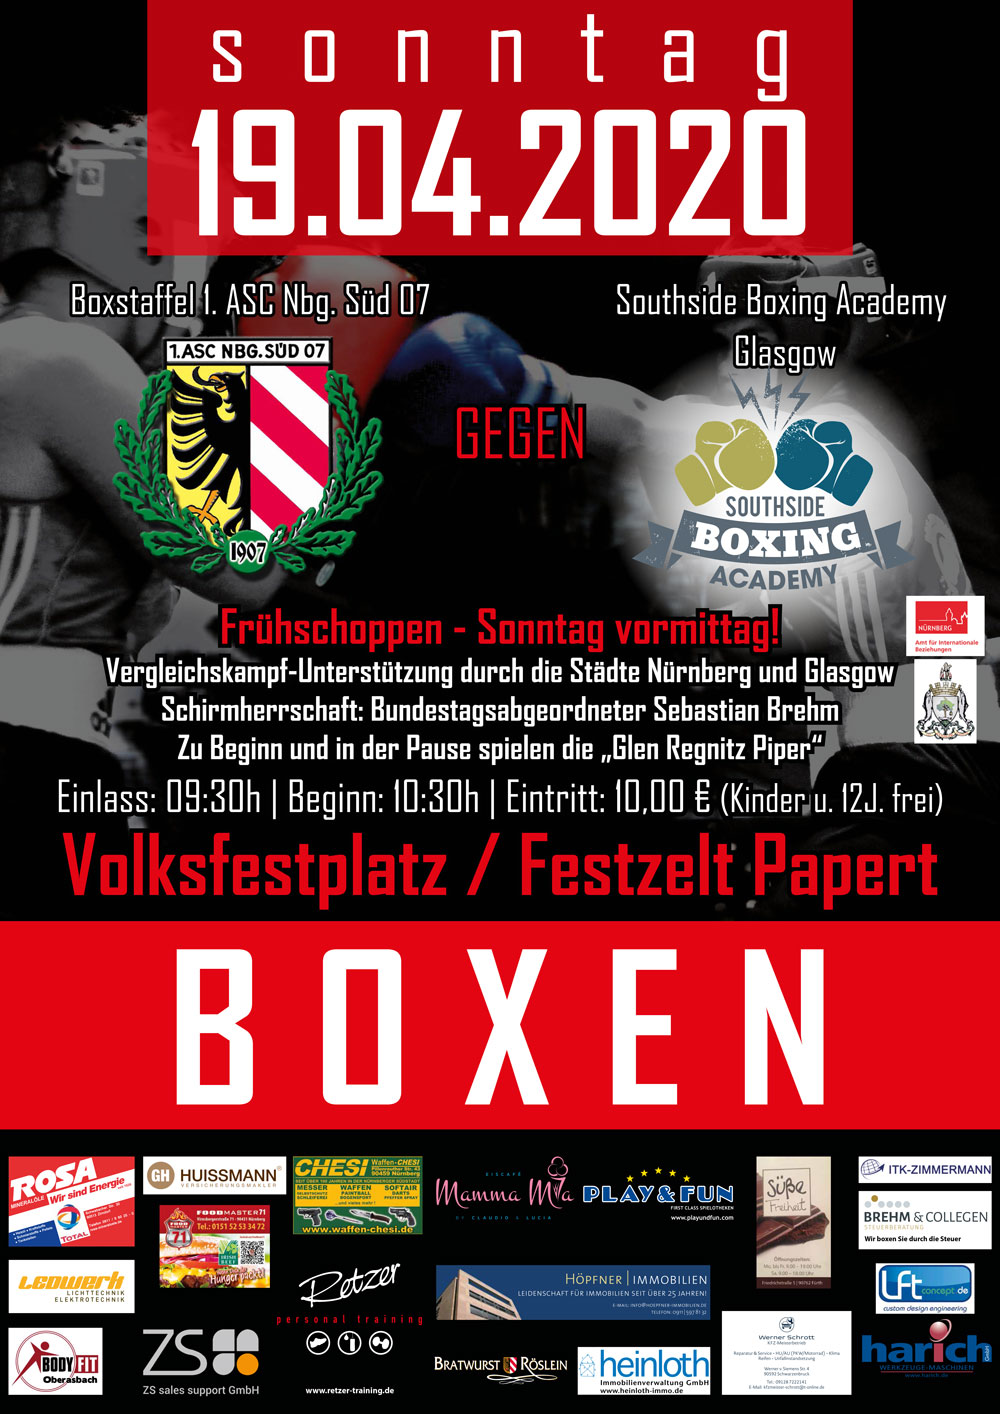 Retzer-Training-Boxkampf-April-2020